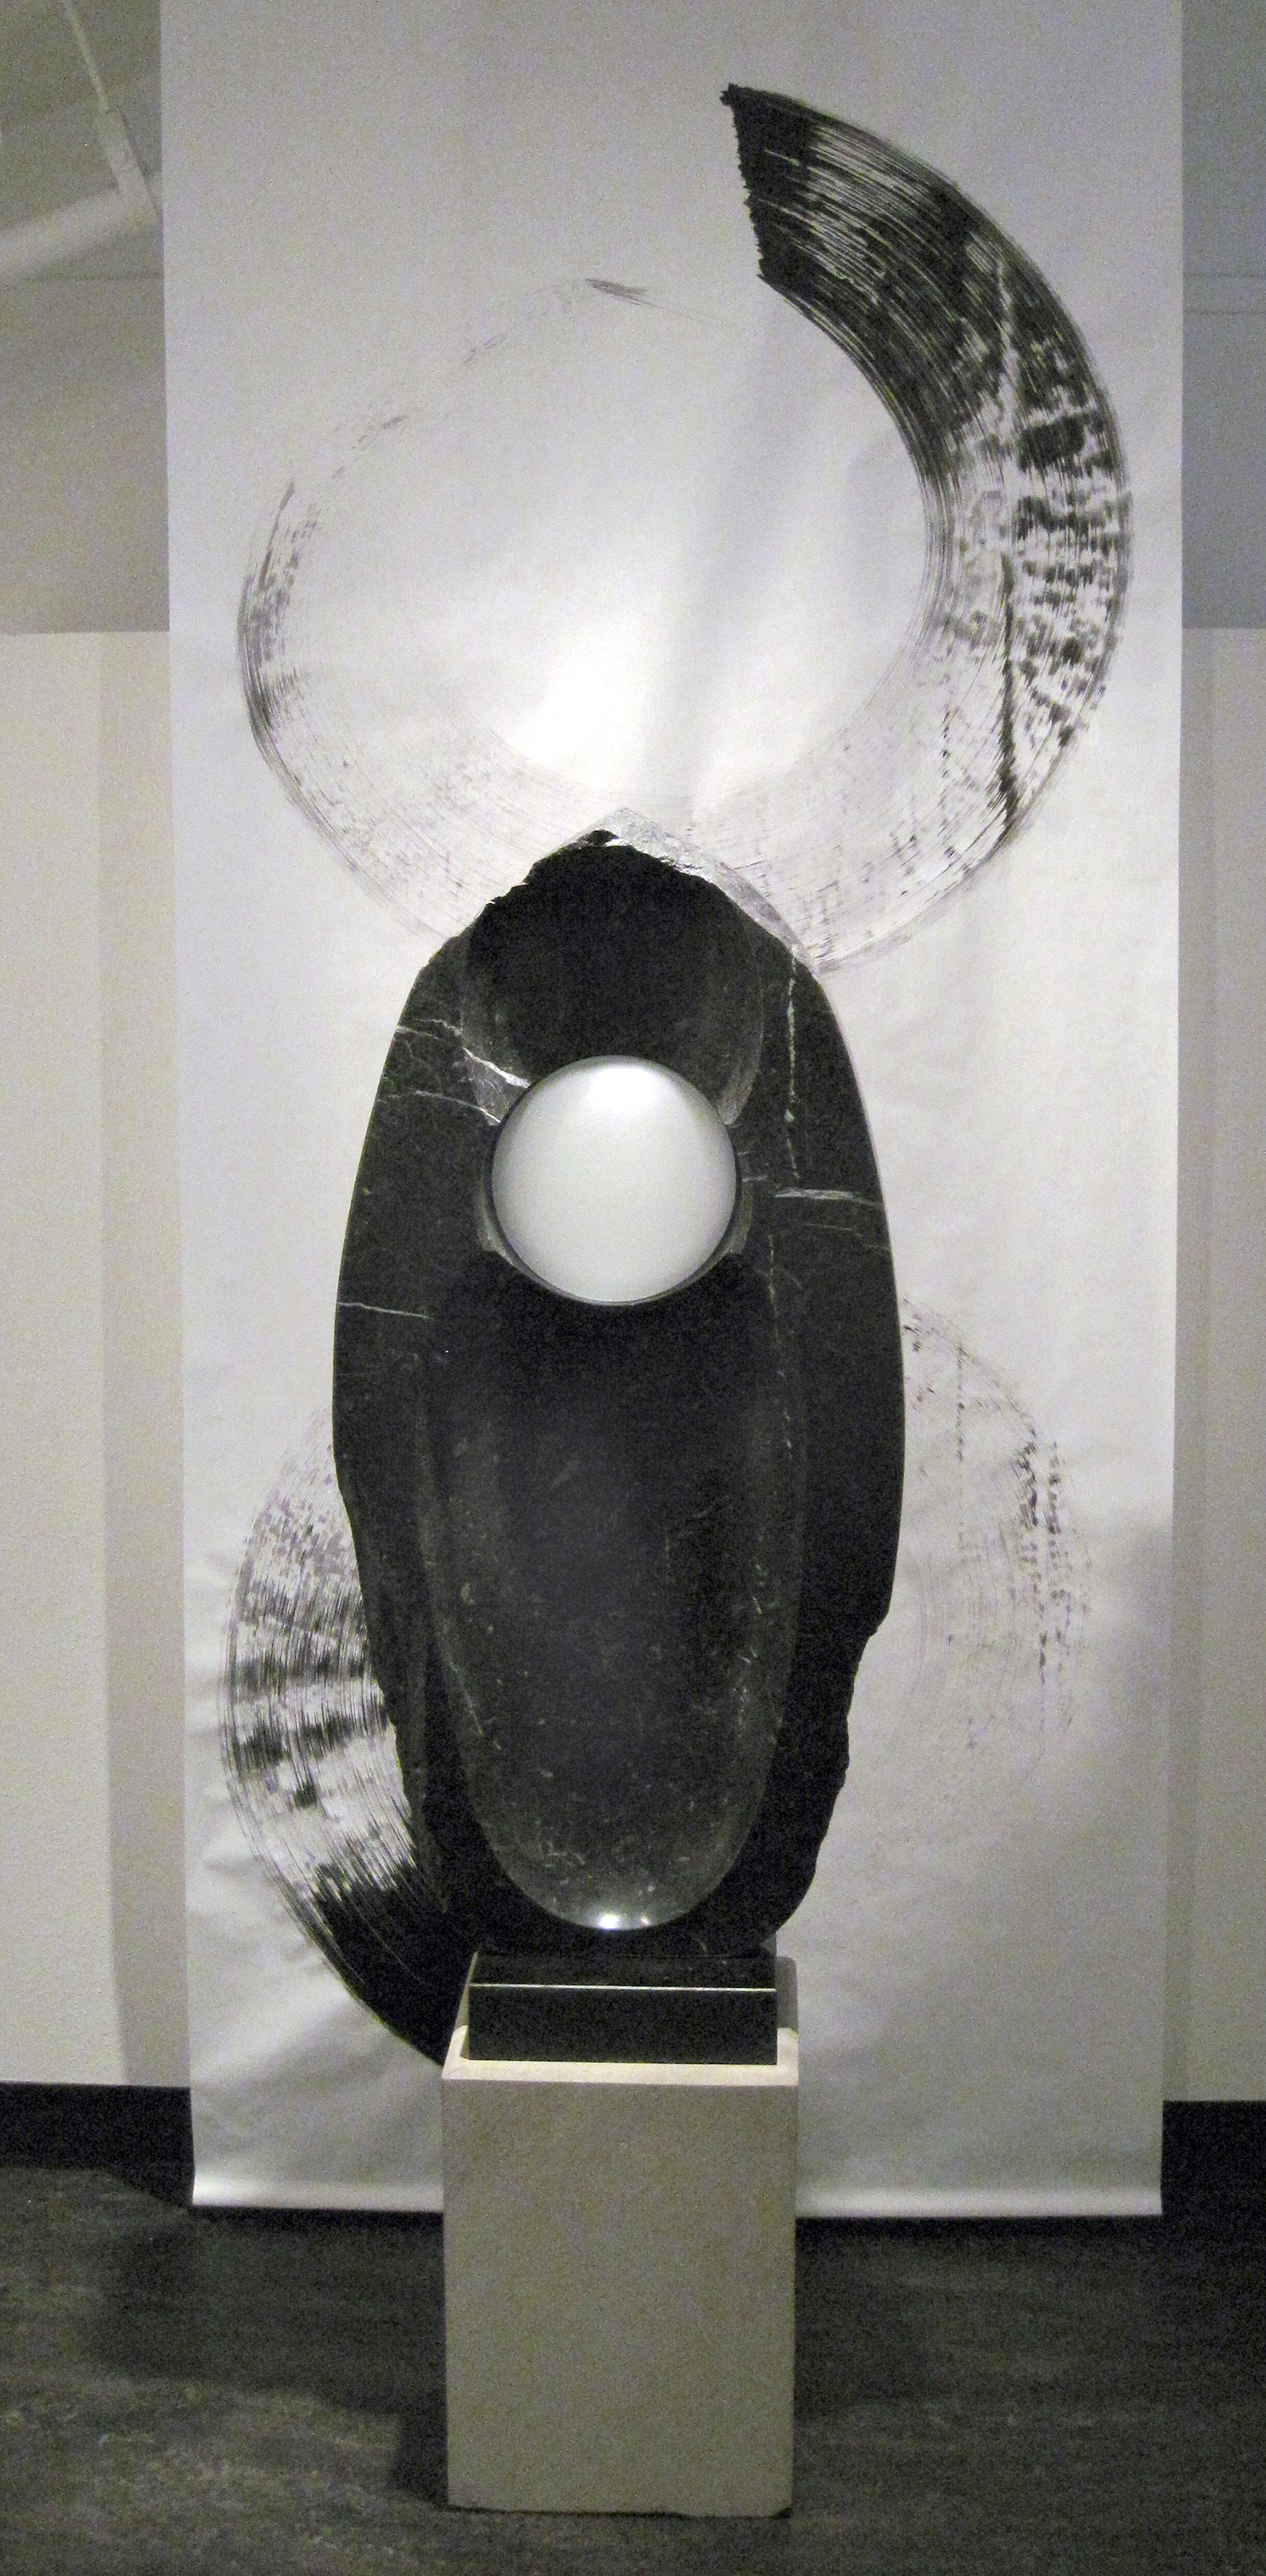 """Black Water Lens"" – Chrysalis, Alaska black fossiliferous limestone, 48"" X 22"" X 7."" Displayed in front of a sumi-e ink painting by Jim Ballard."